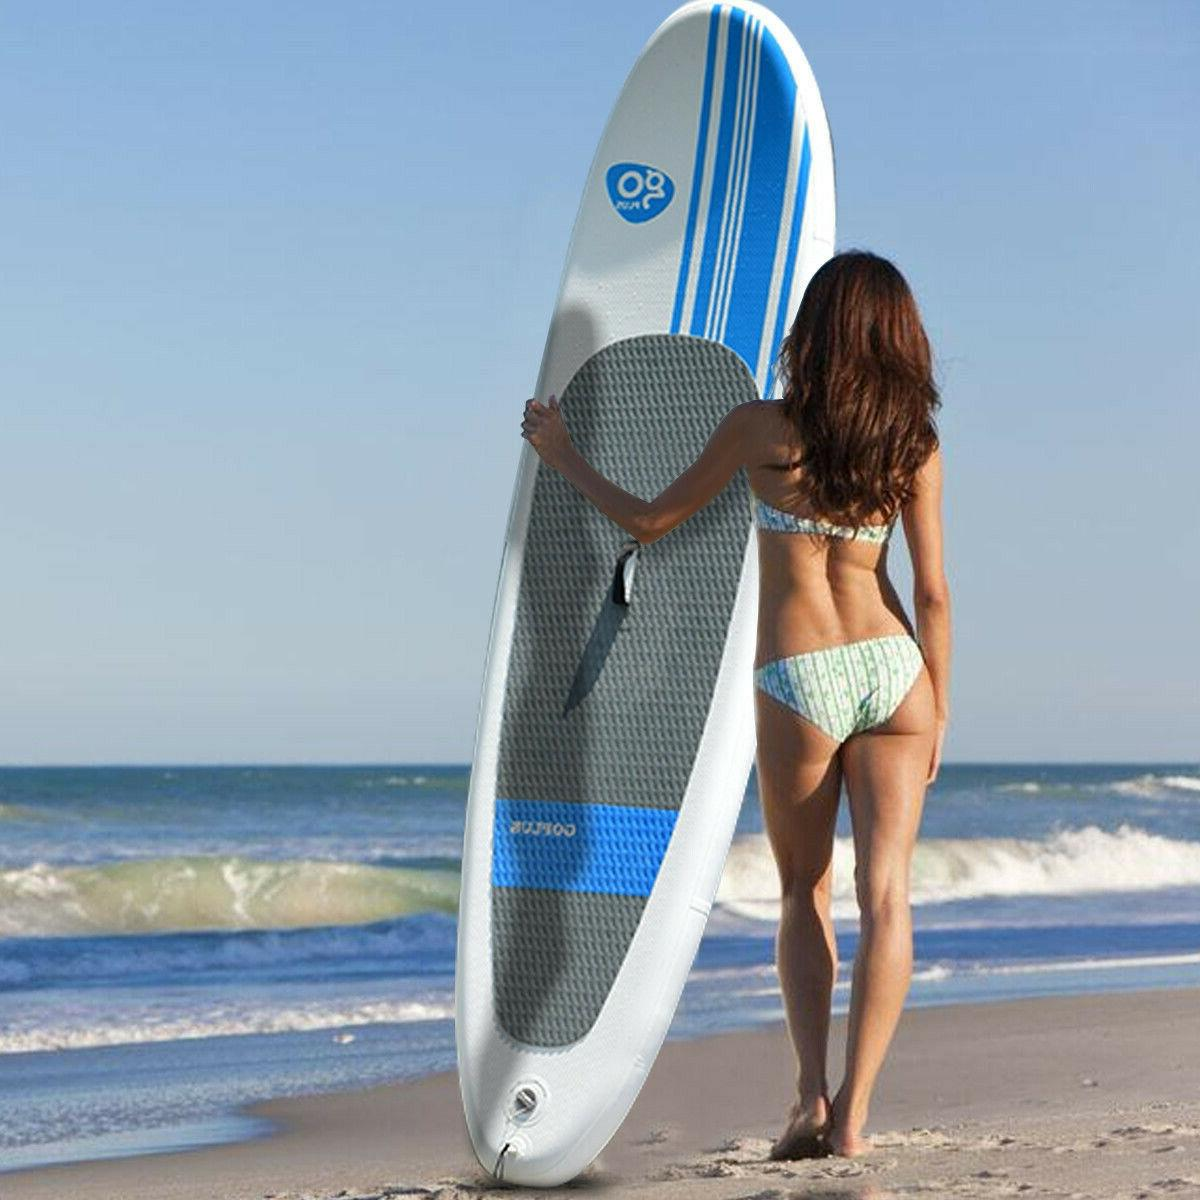 10 Foot Stand Up Board SUP Kayak White Fin Bag